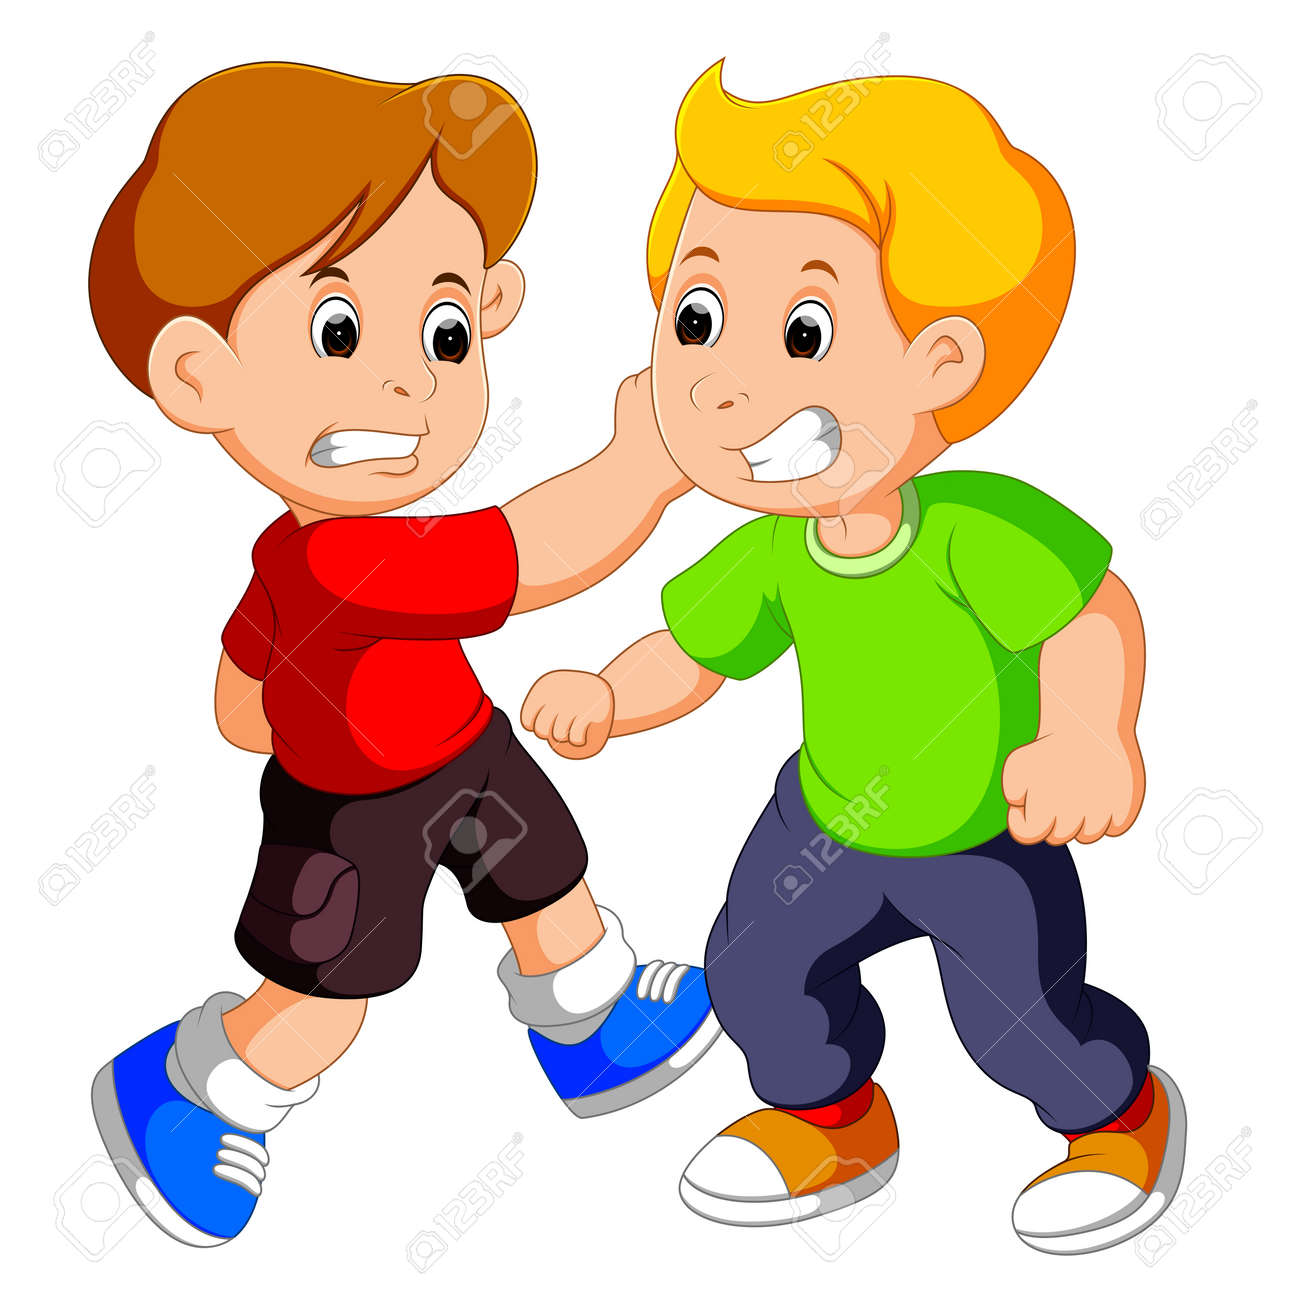 Two young boys fighting - 88598678